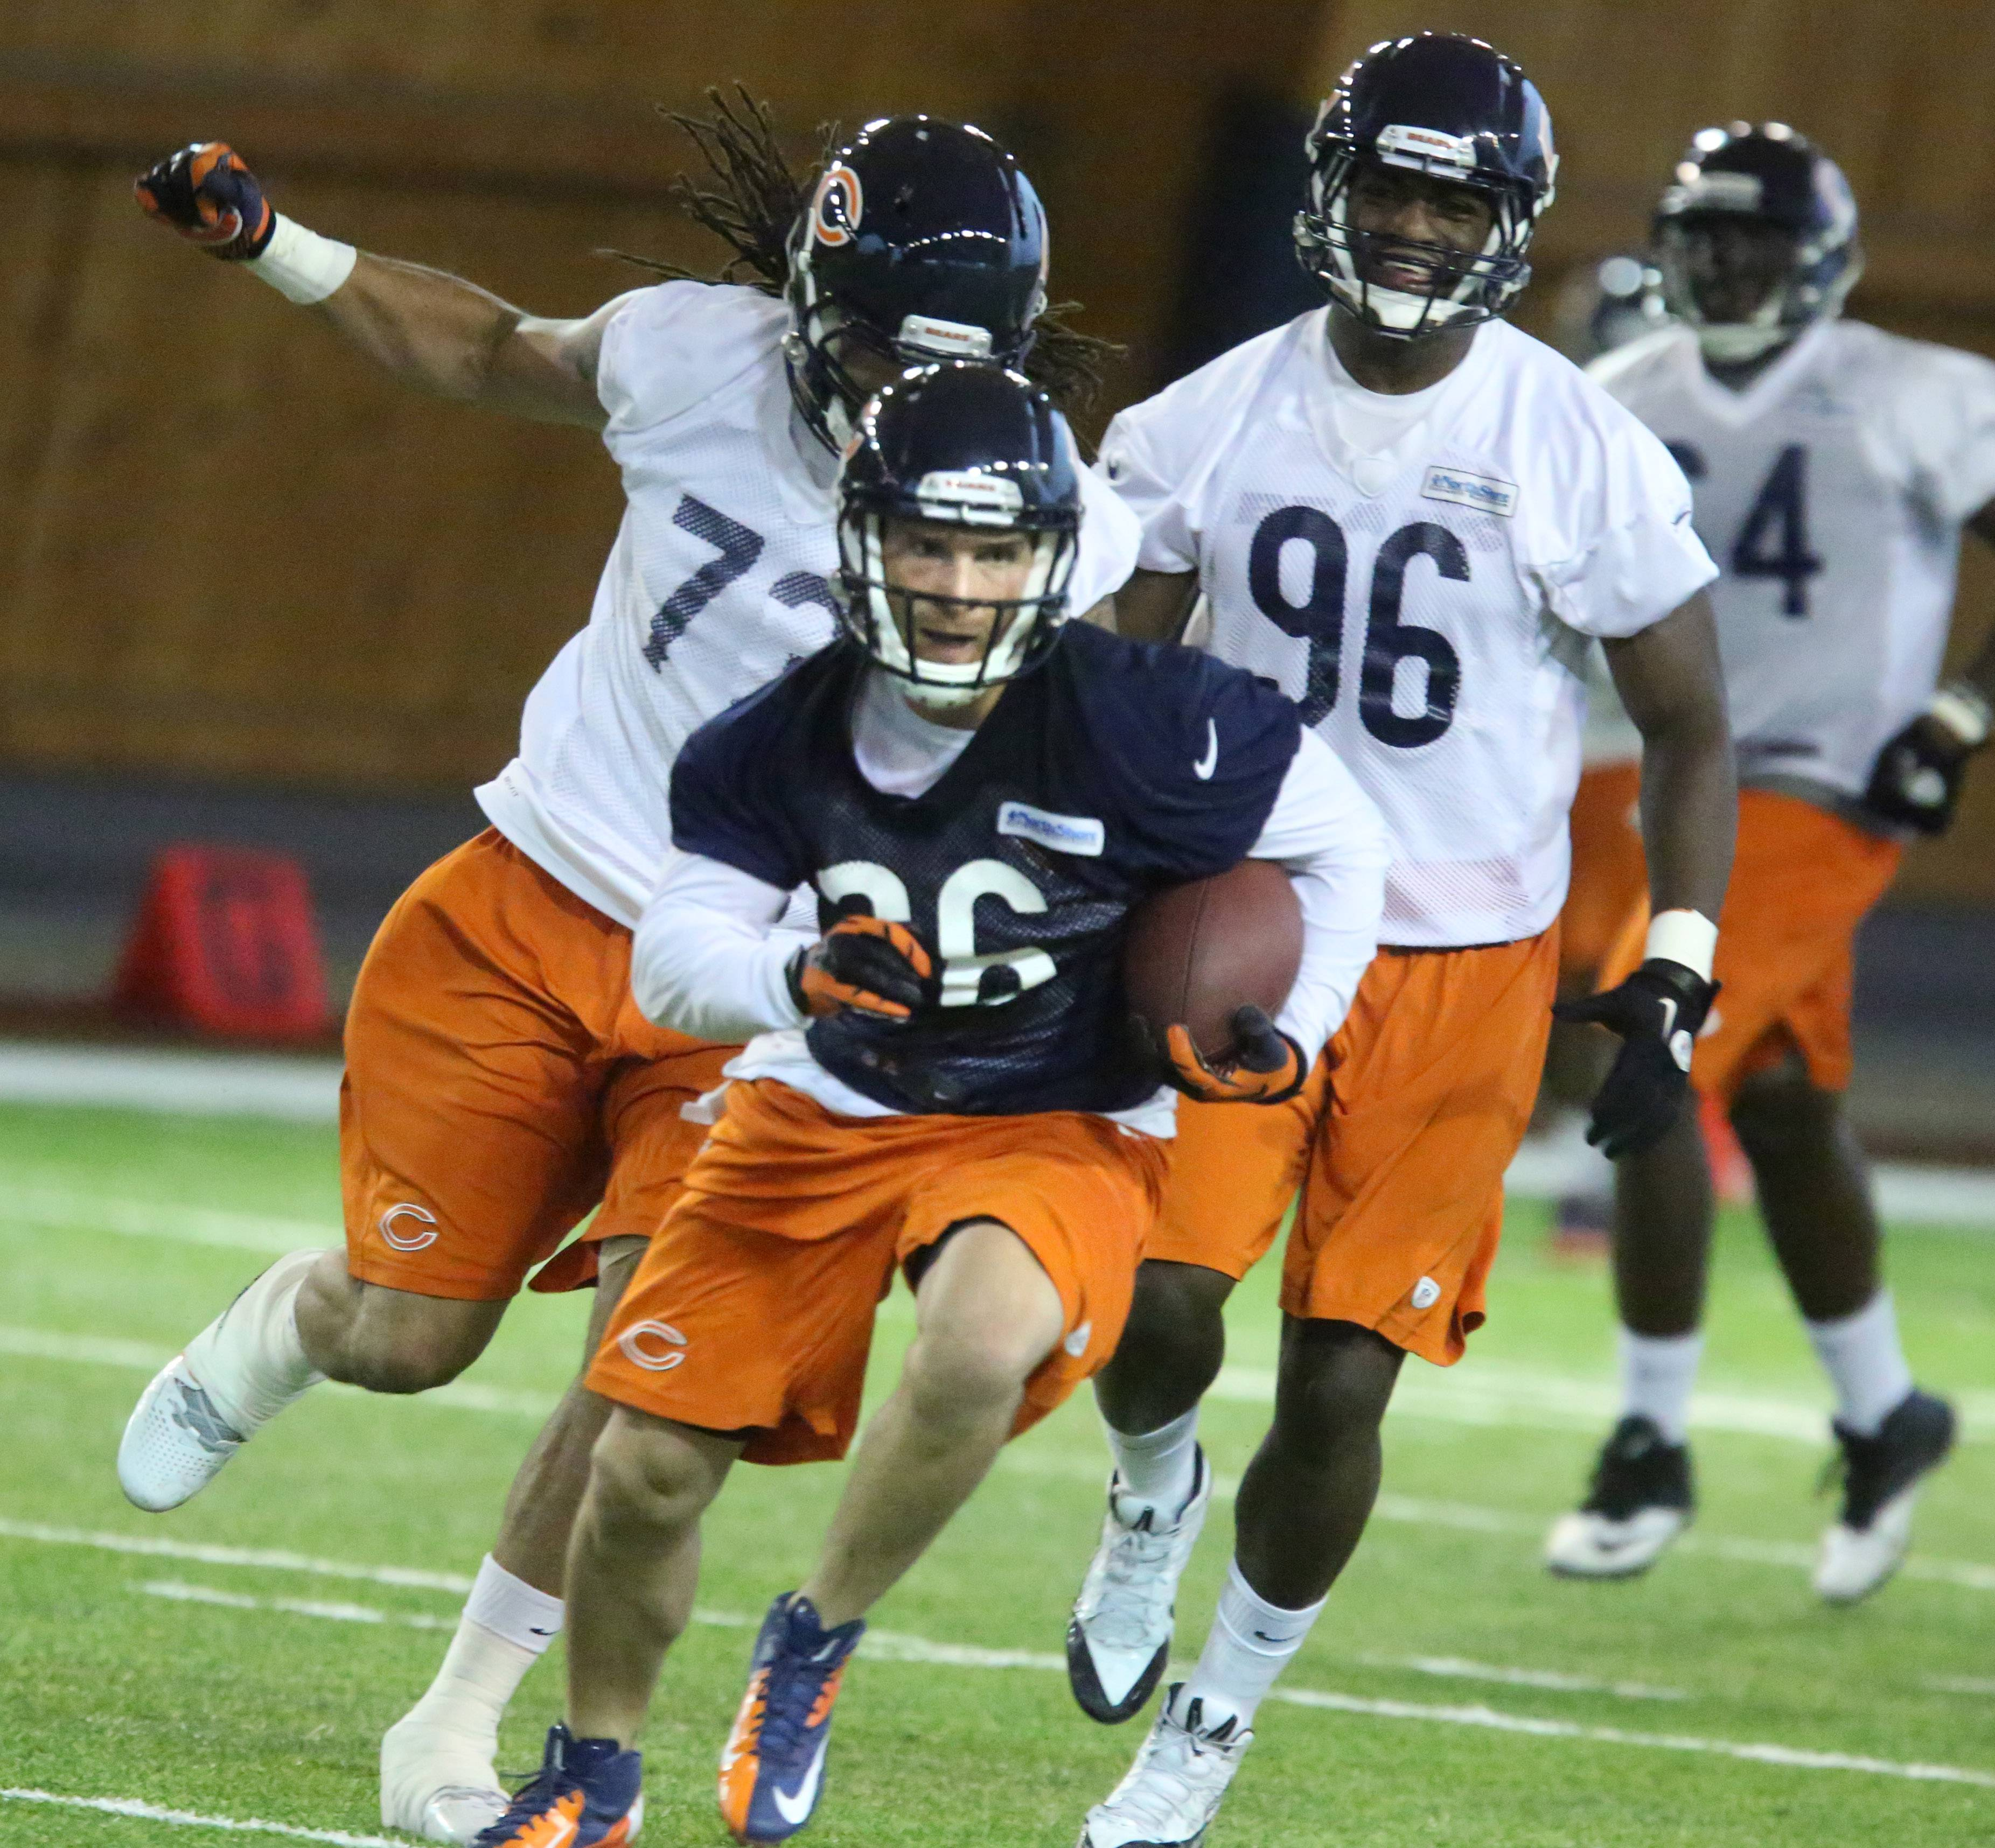 The odds are against former NIU quarterback Jordan Lynch making the Bears' roster, but his toughness and smarts make him a coach's dream.